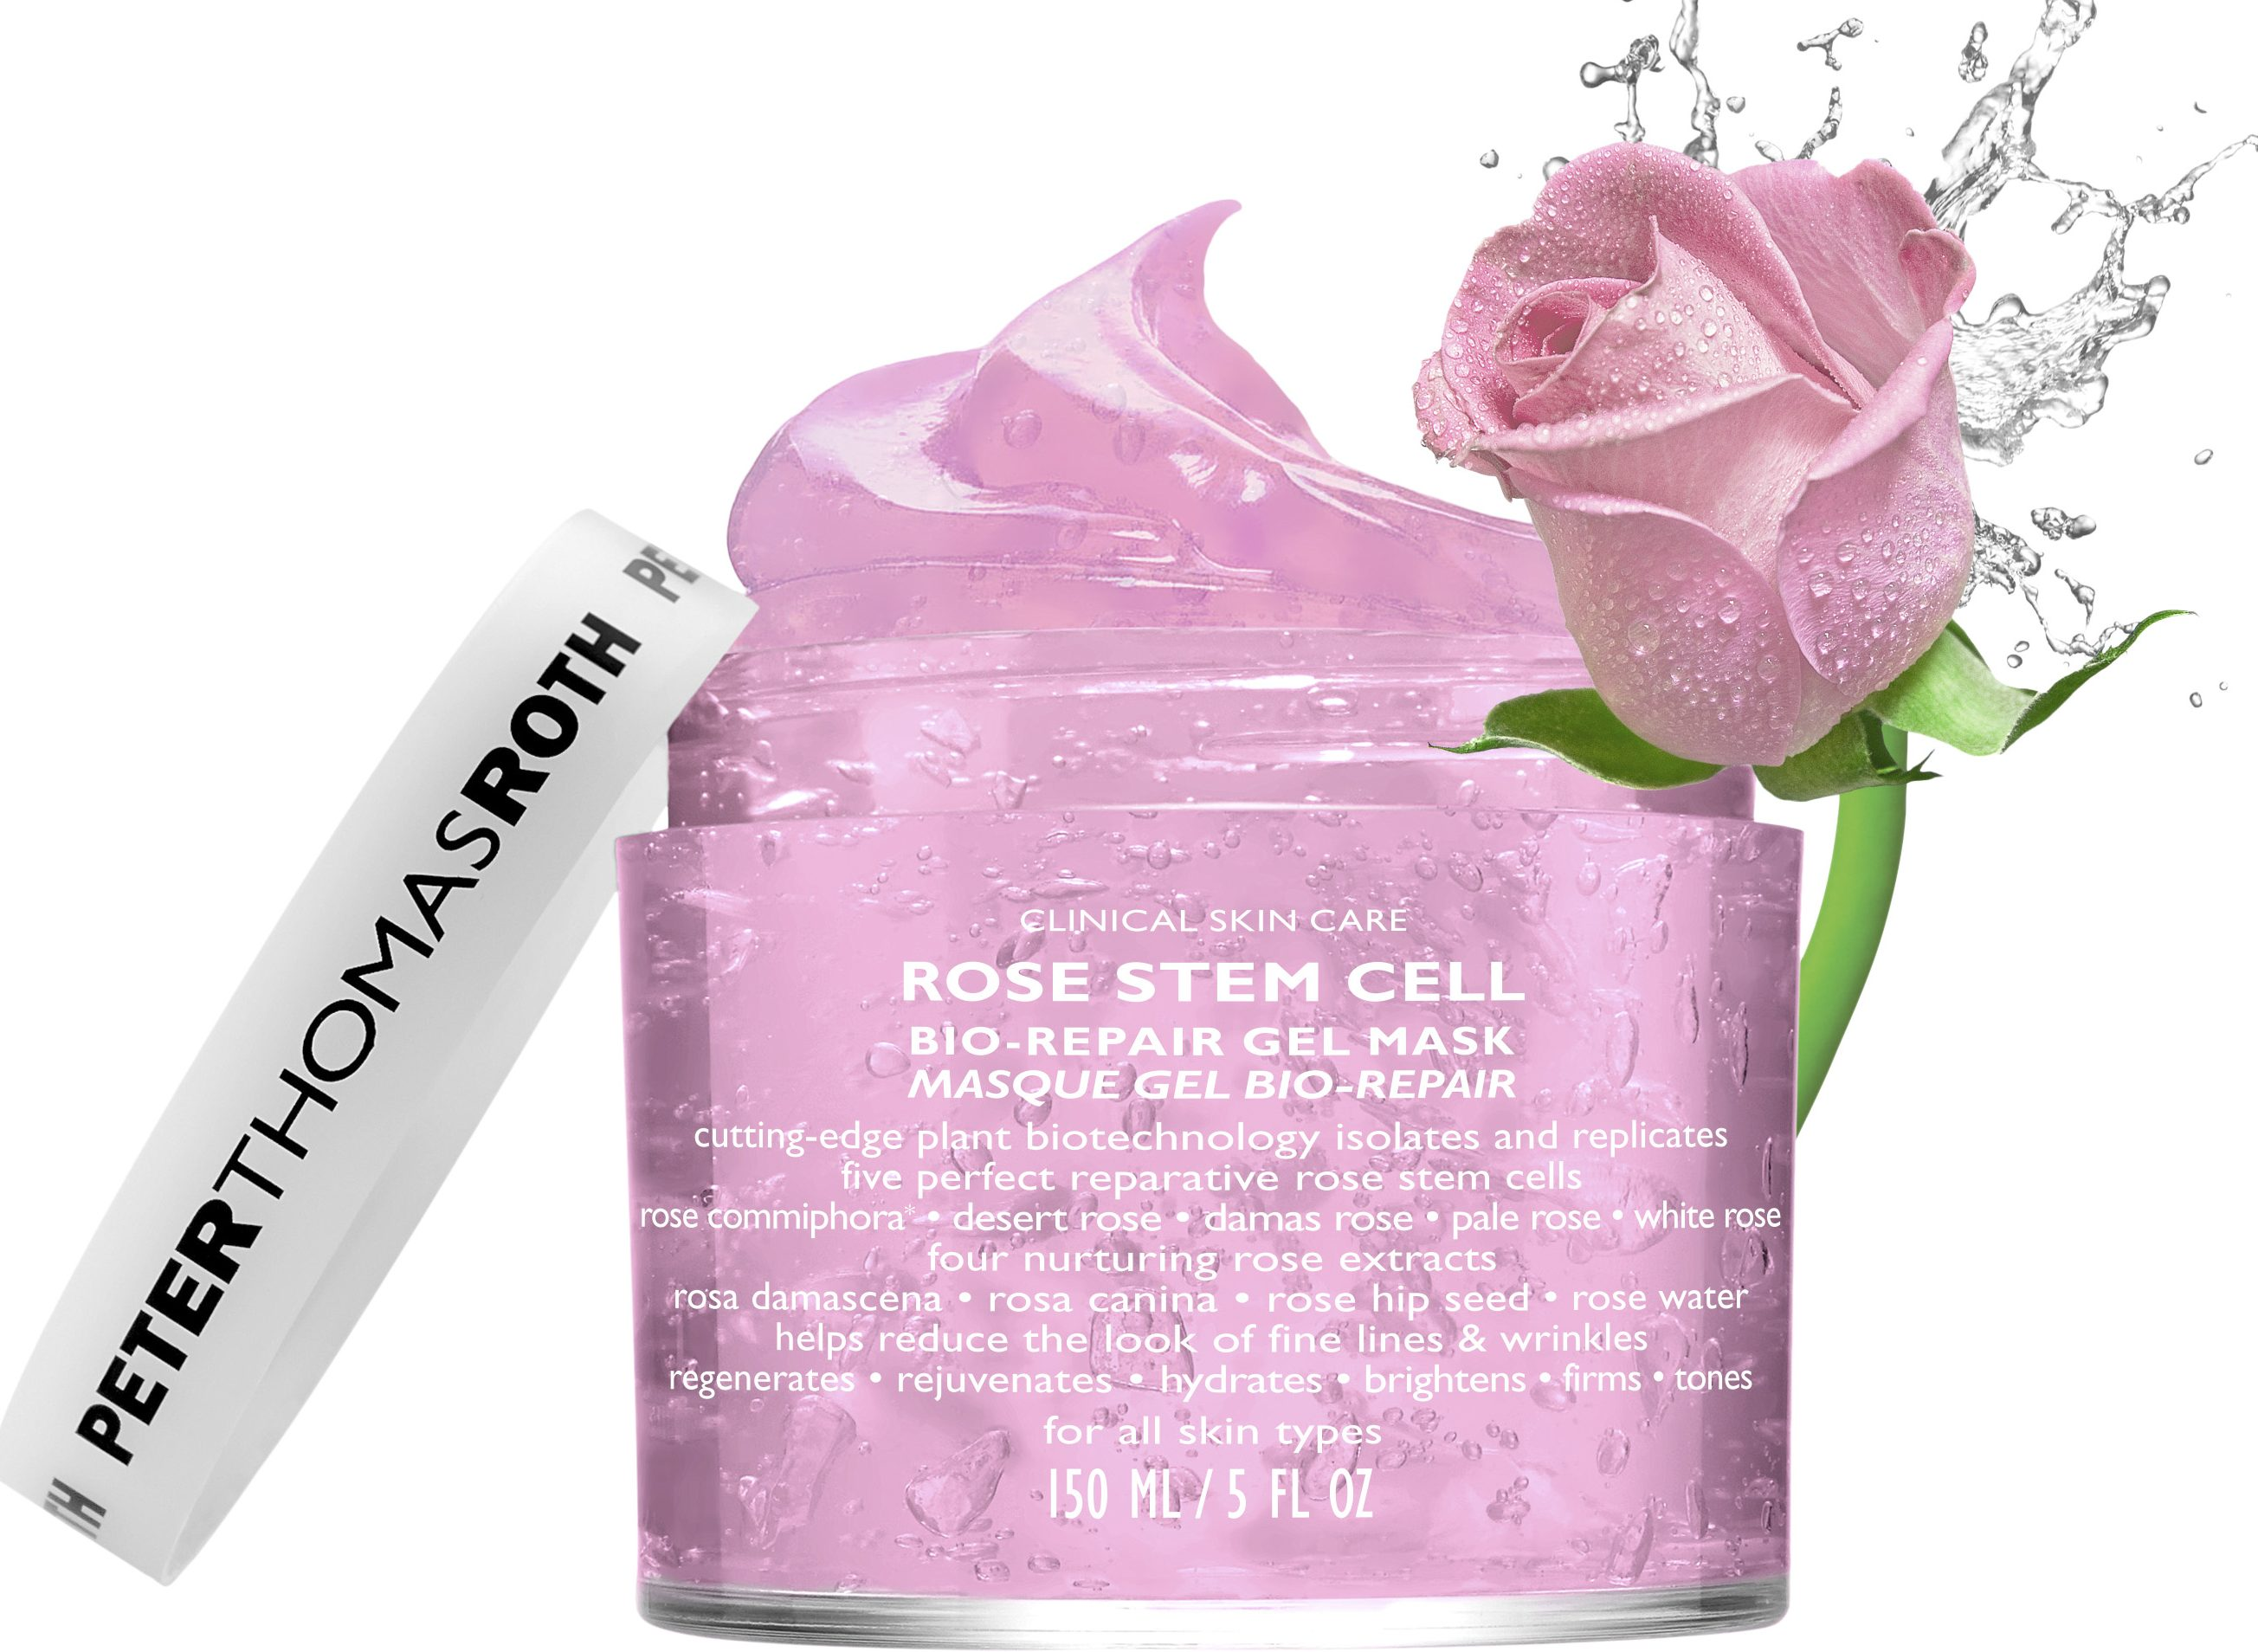 peter thomas roth maske rose